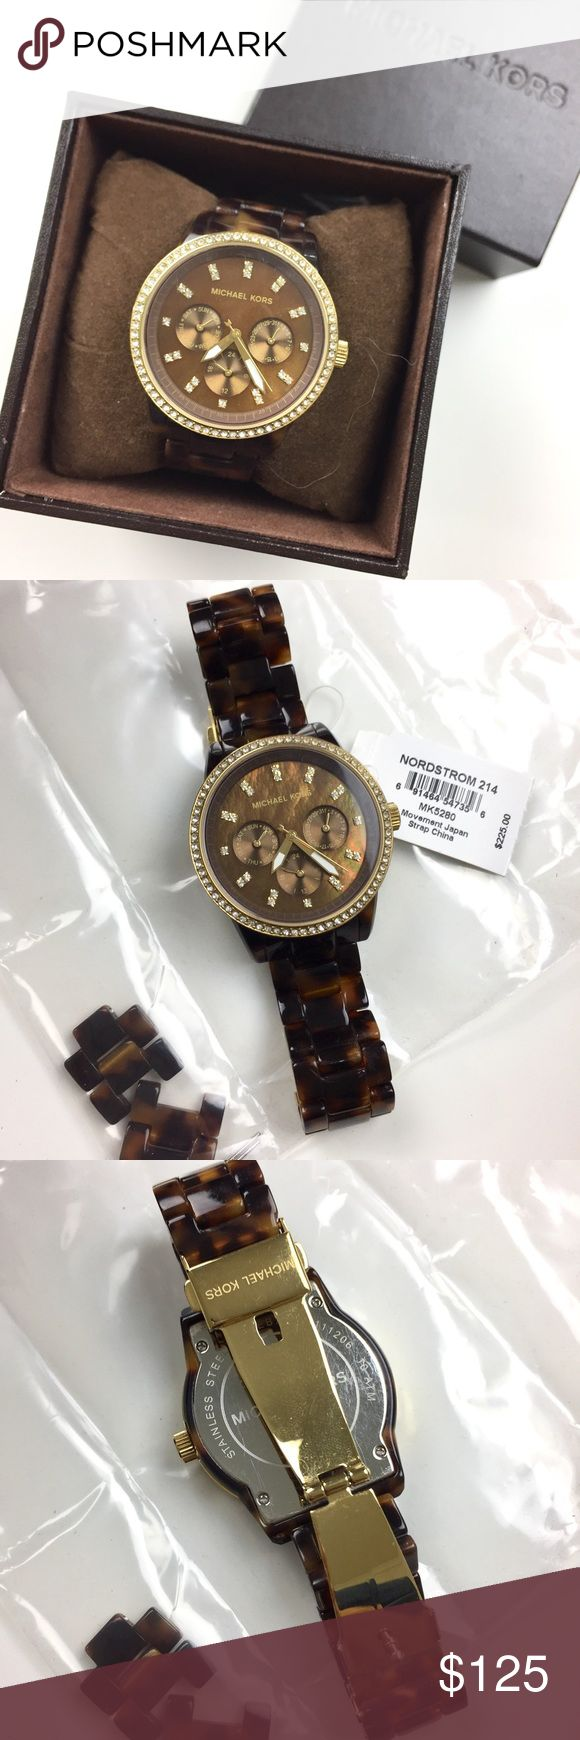 Michael Kors Tortoise Watch NO TRADES • Michael Kors Tortoise watch. No scratch on the face. Pre-loved; in great condition. Includes original box and extra links. Needs new battery. Purchased from Nordstrom. • NO TRADES Michael Kors Accessories Watches